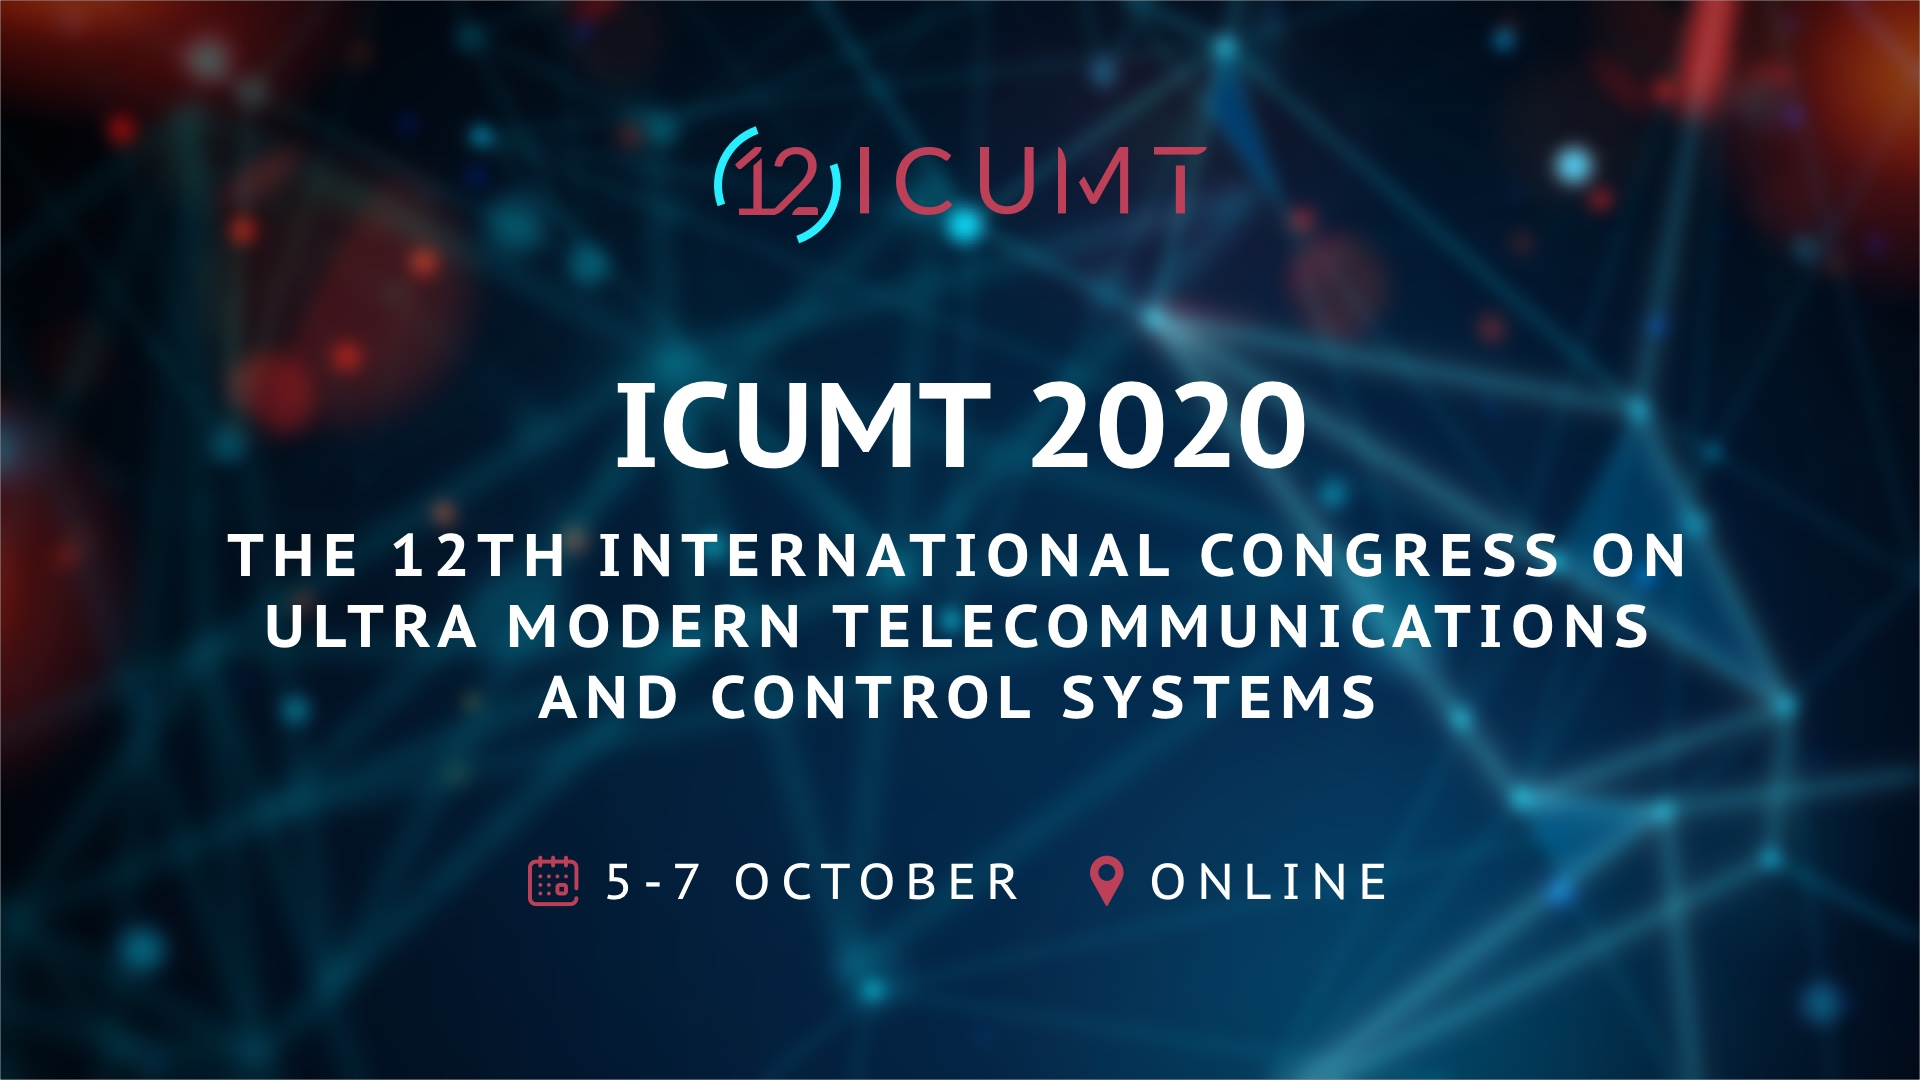 ICUMT 2020